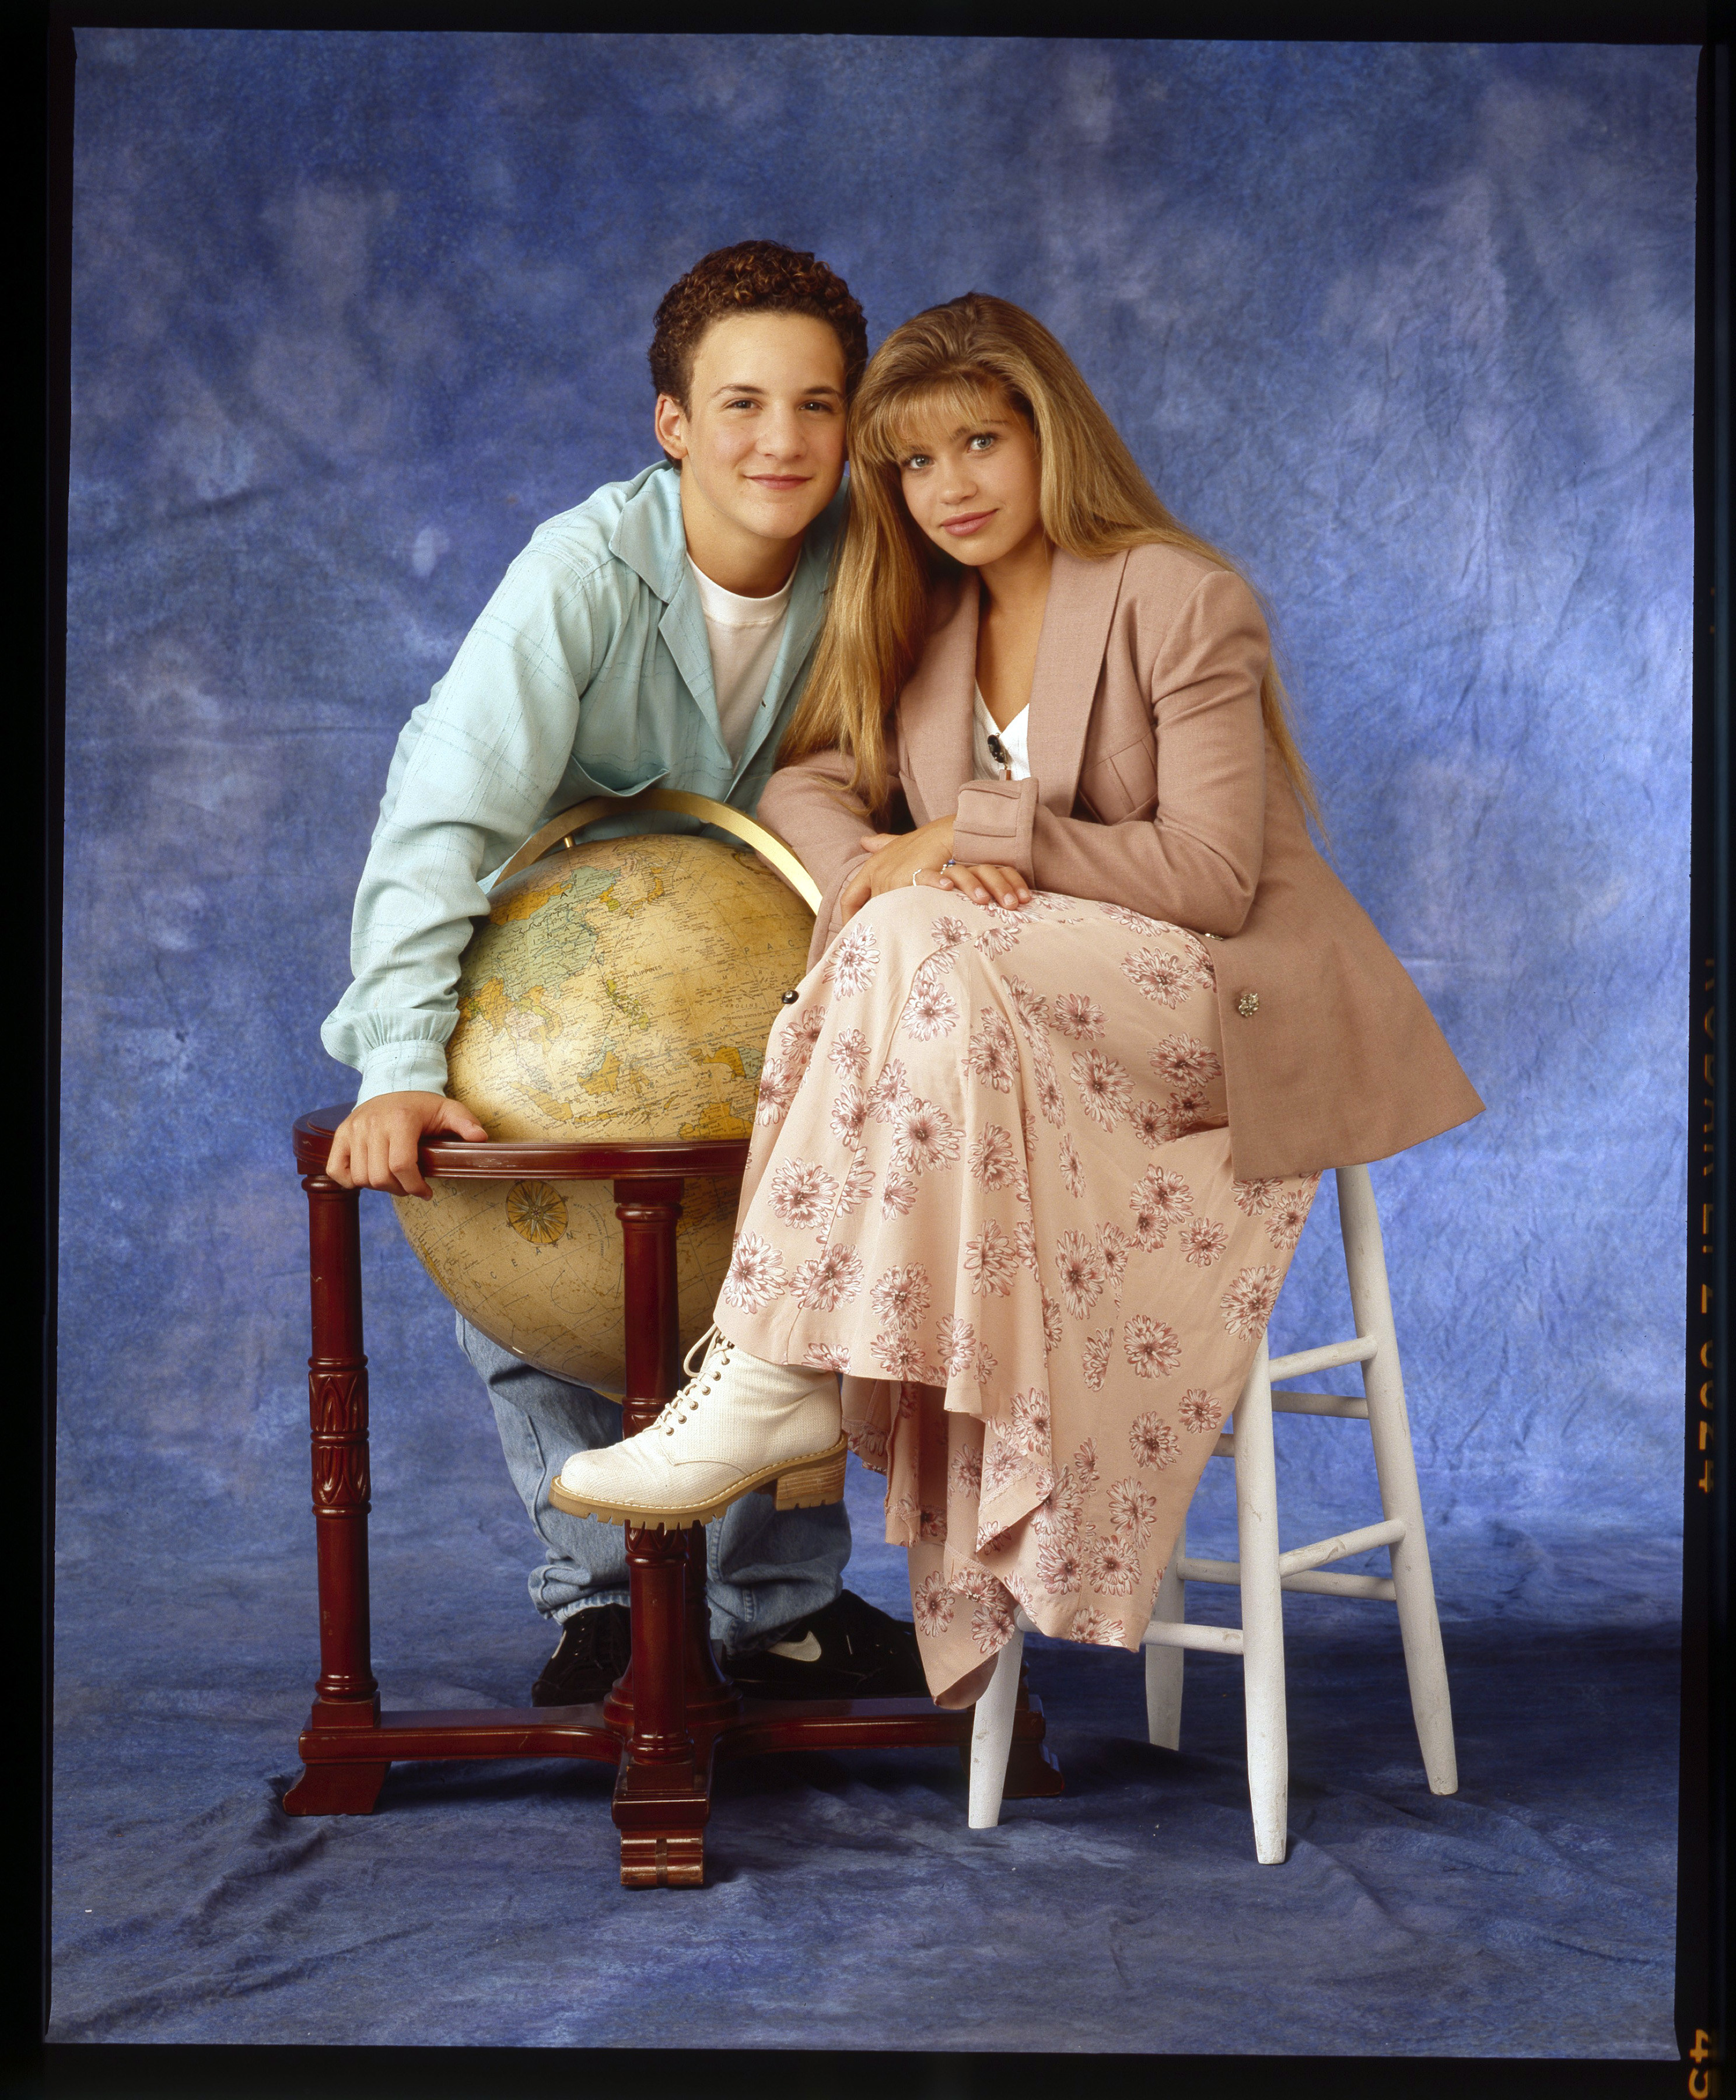 A photo of Cory and Topanga leaning on a globe with a tie-dye blue background